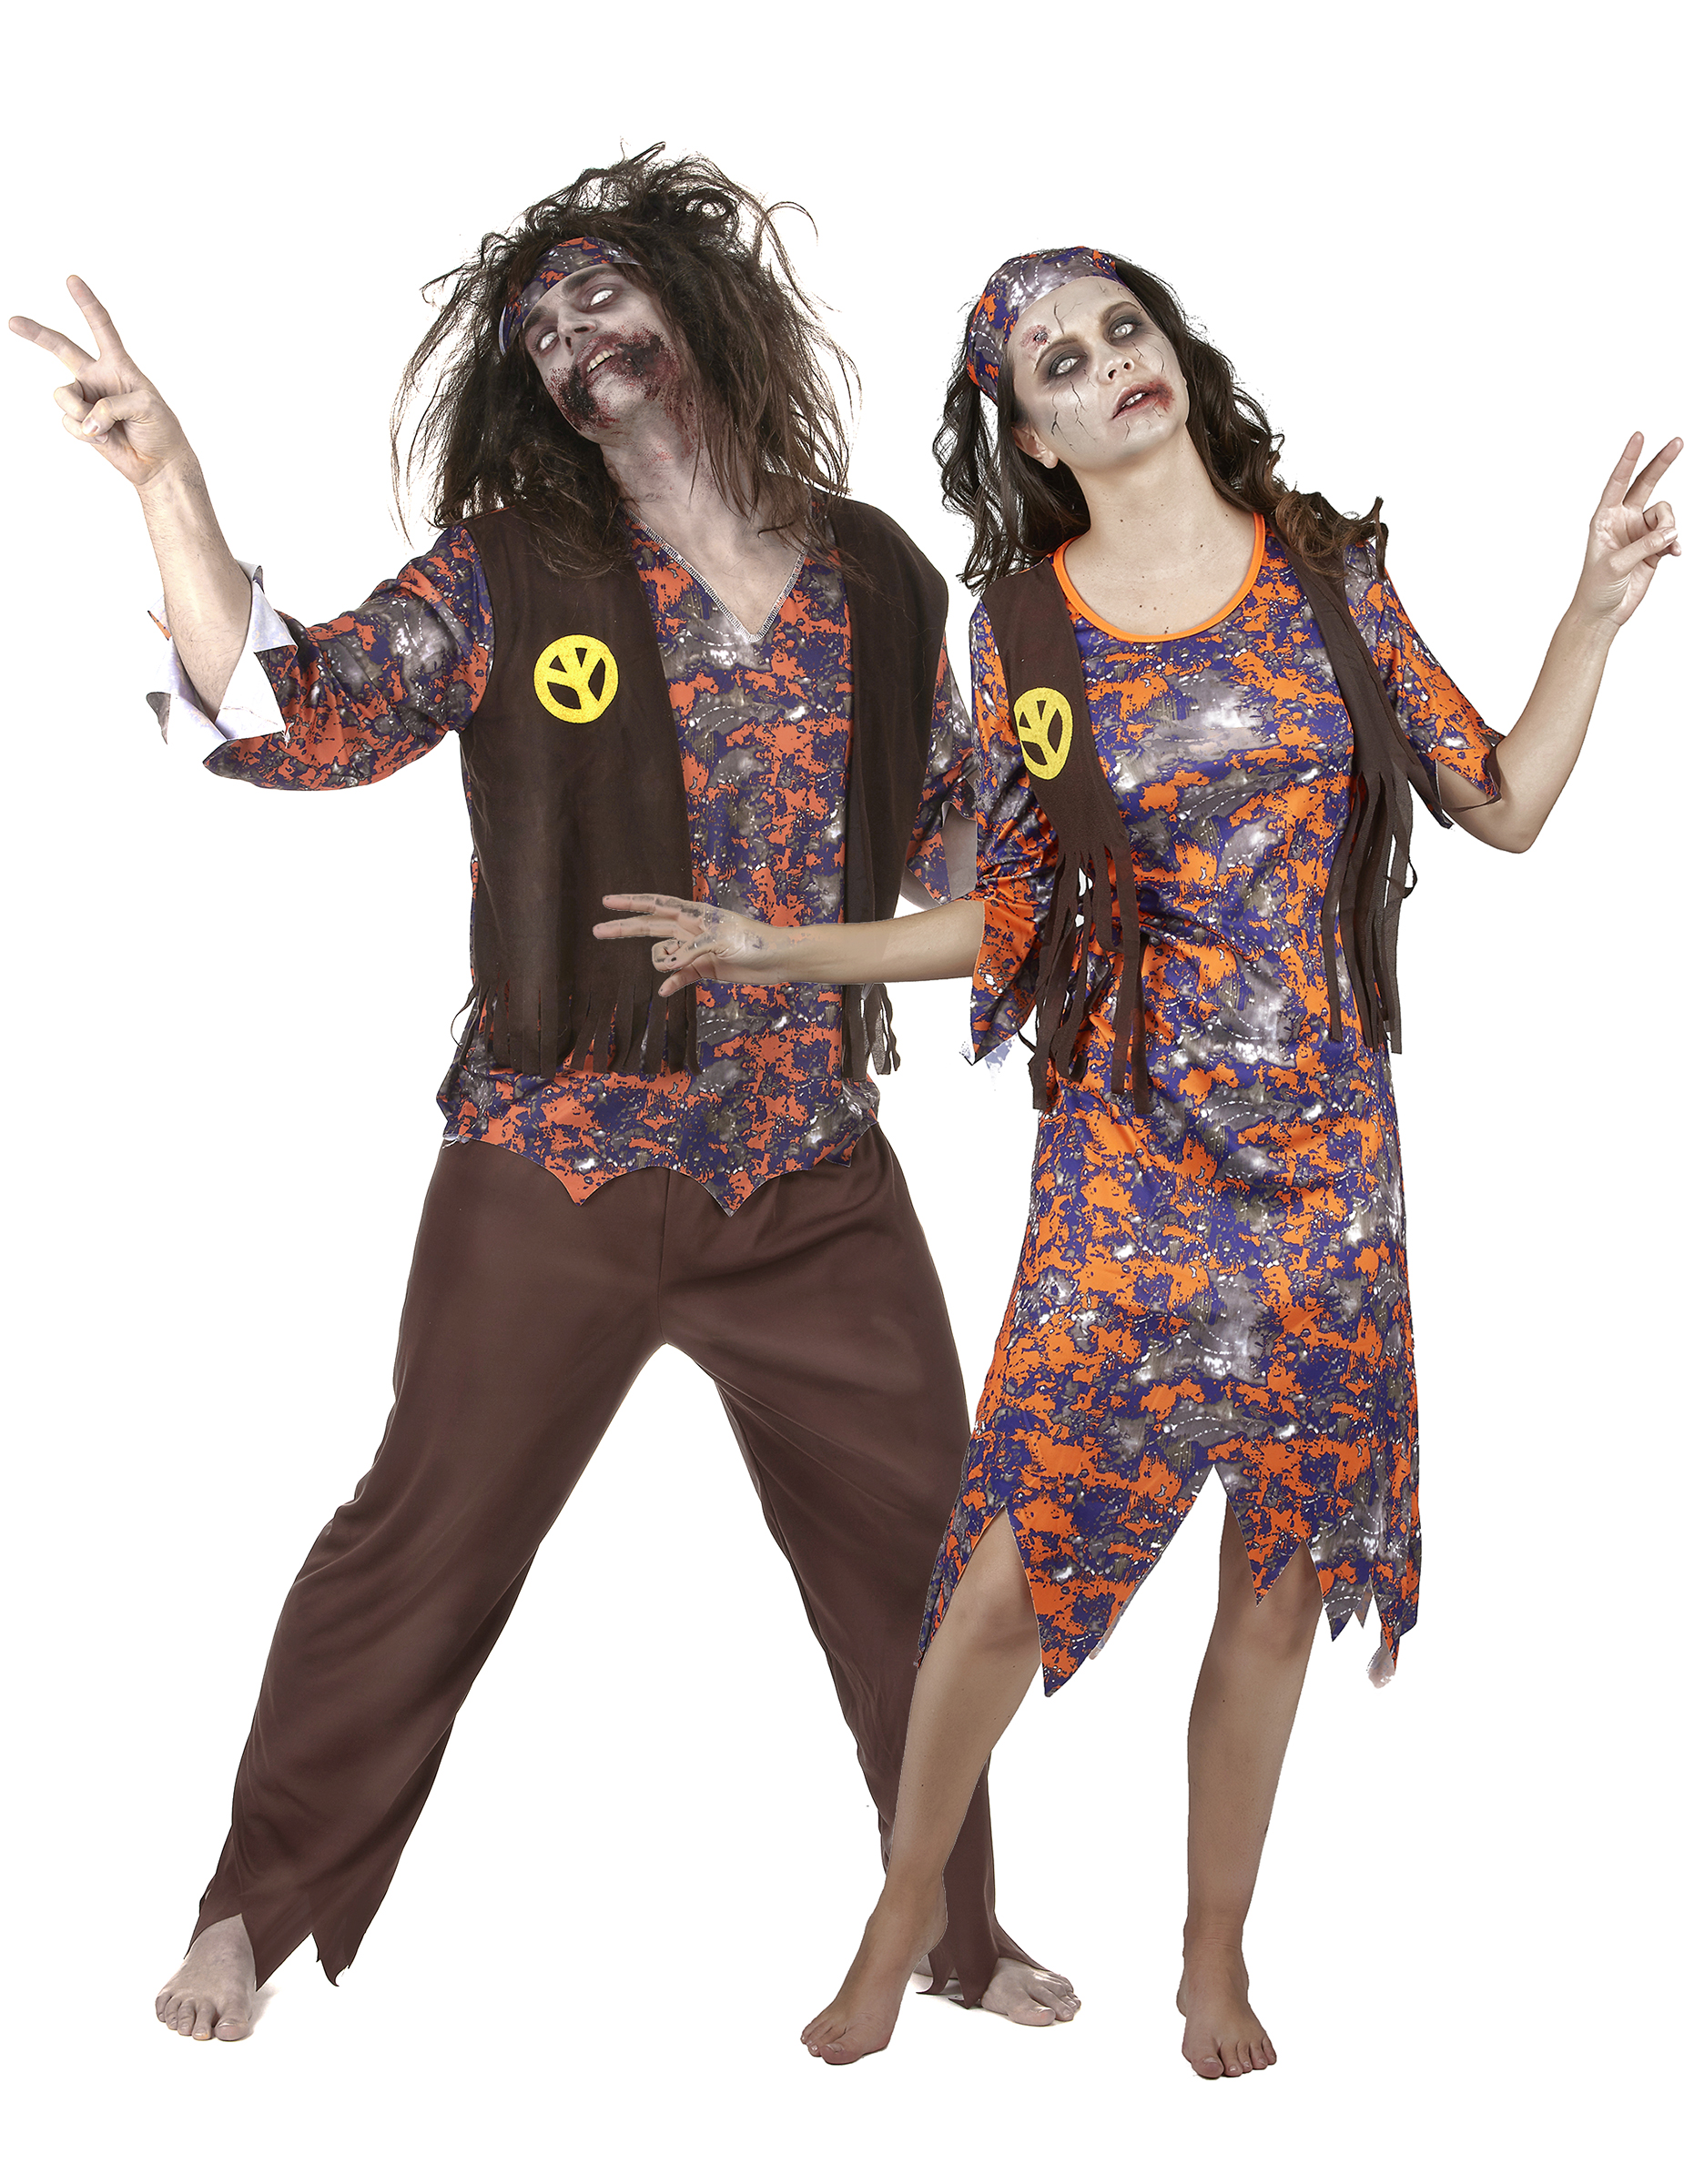 D guisement de couple hippie zombie halloween deguise toi achat de d guisements couples - Deguisement halloween couple ...